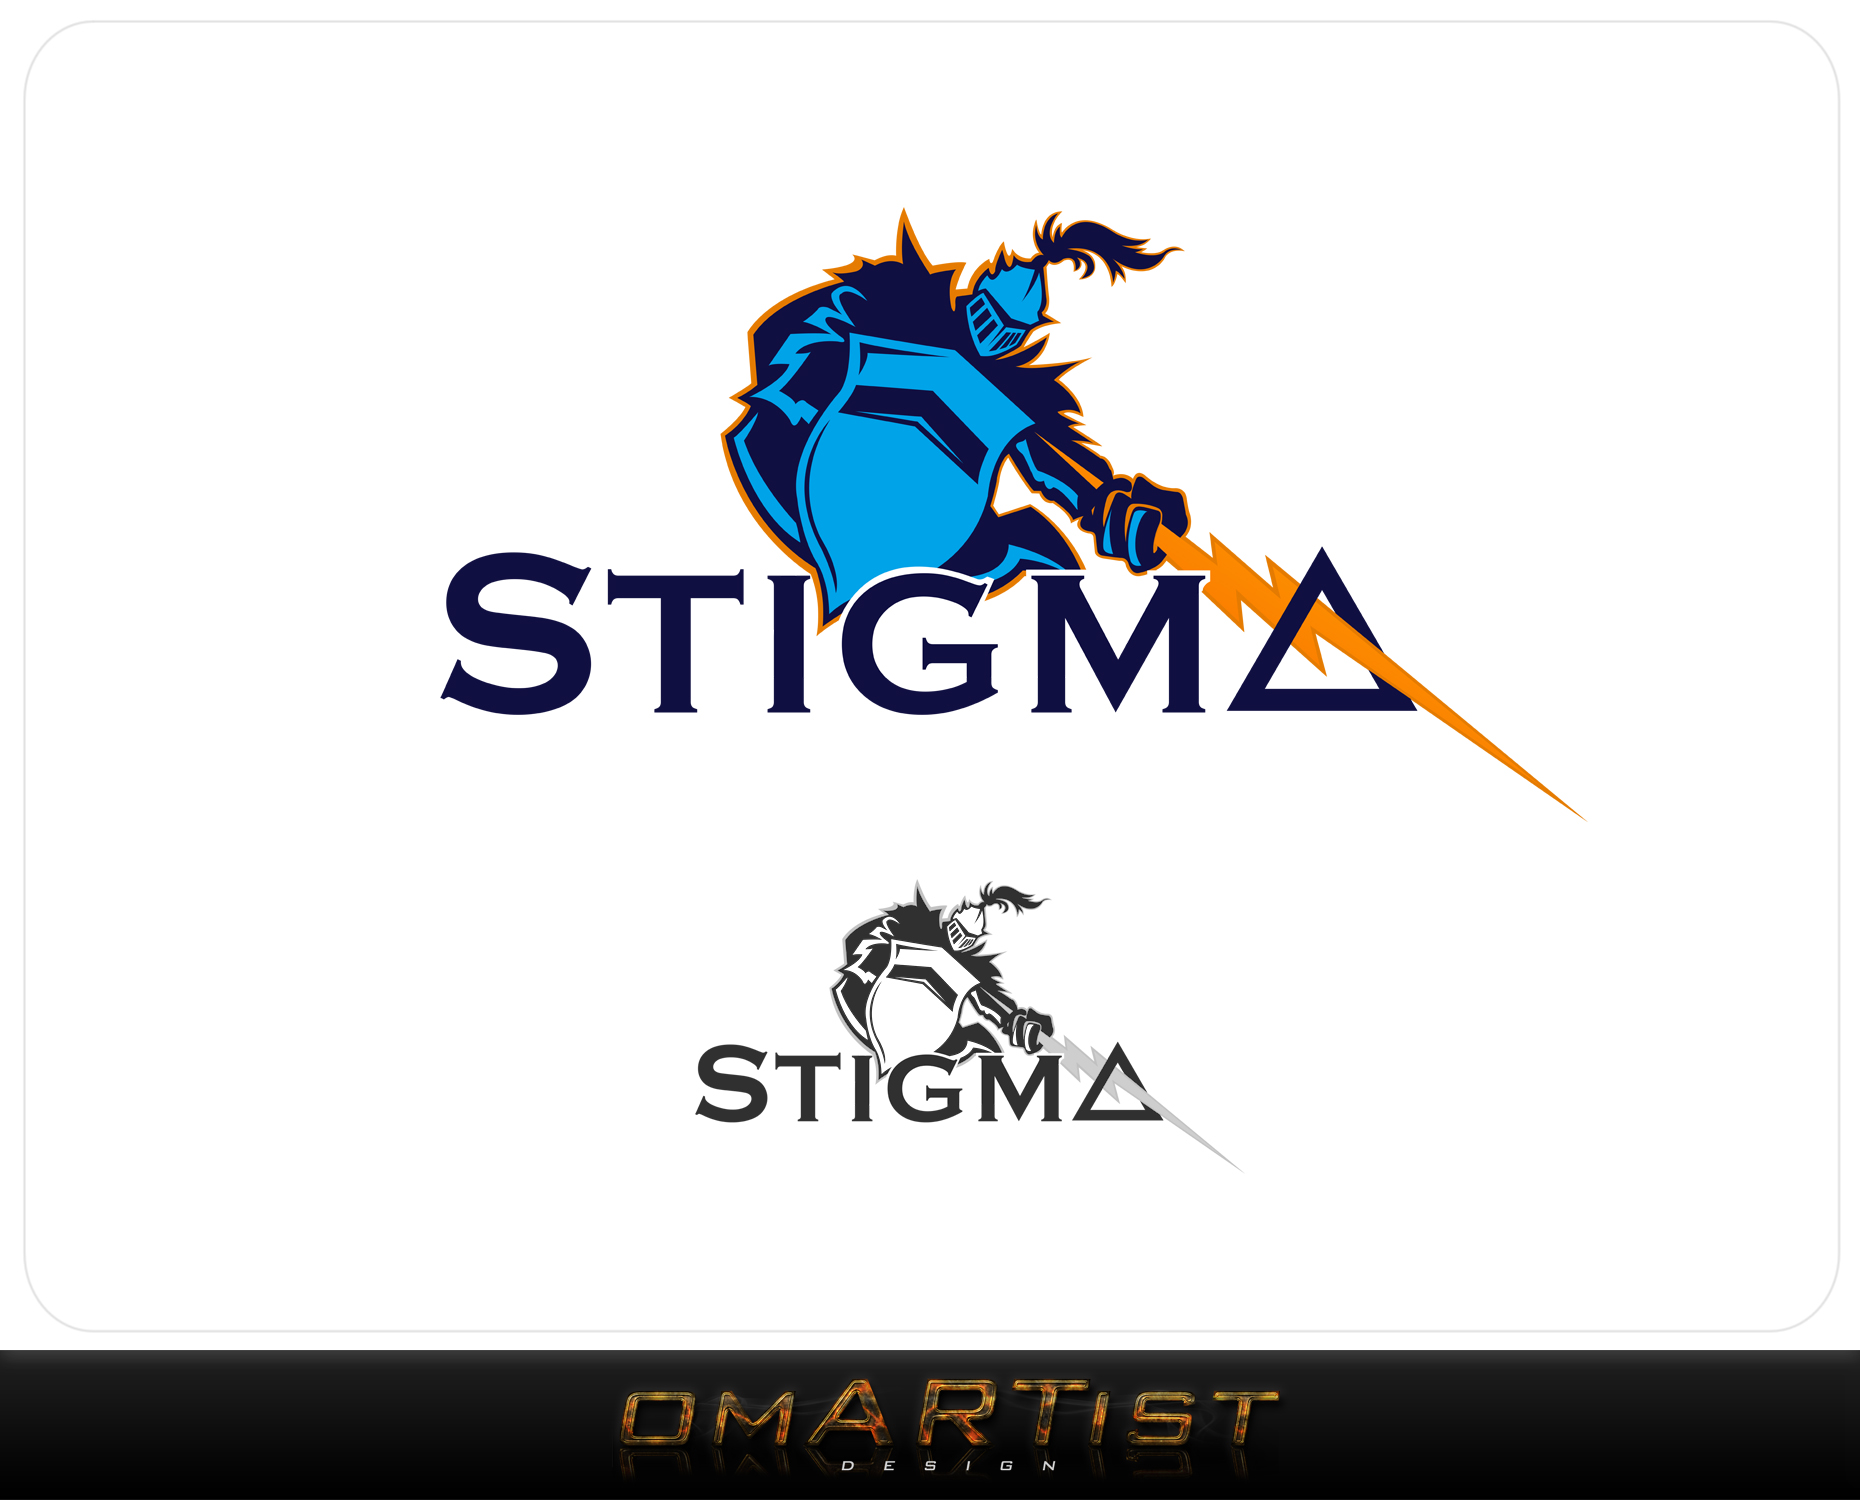 Logo Design by omARTist - Entry No. 12 in the Logo Design Contest Creative Logo Design for STIGMA.